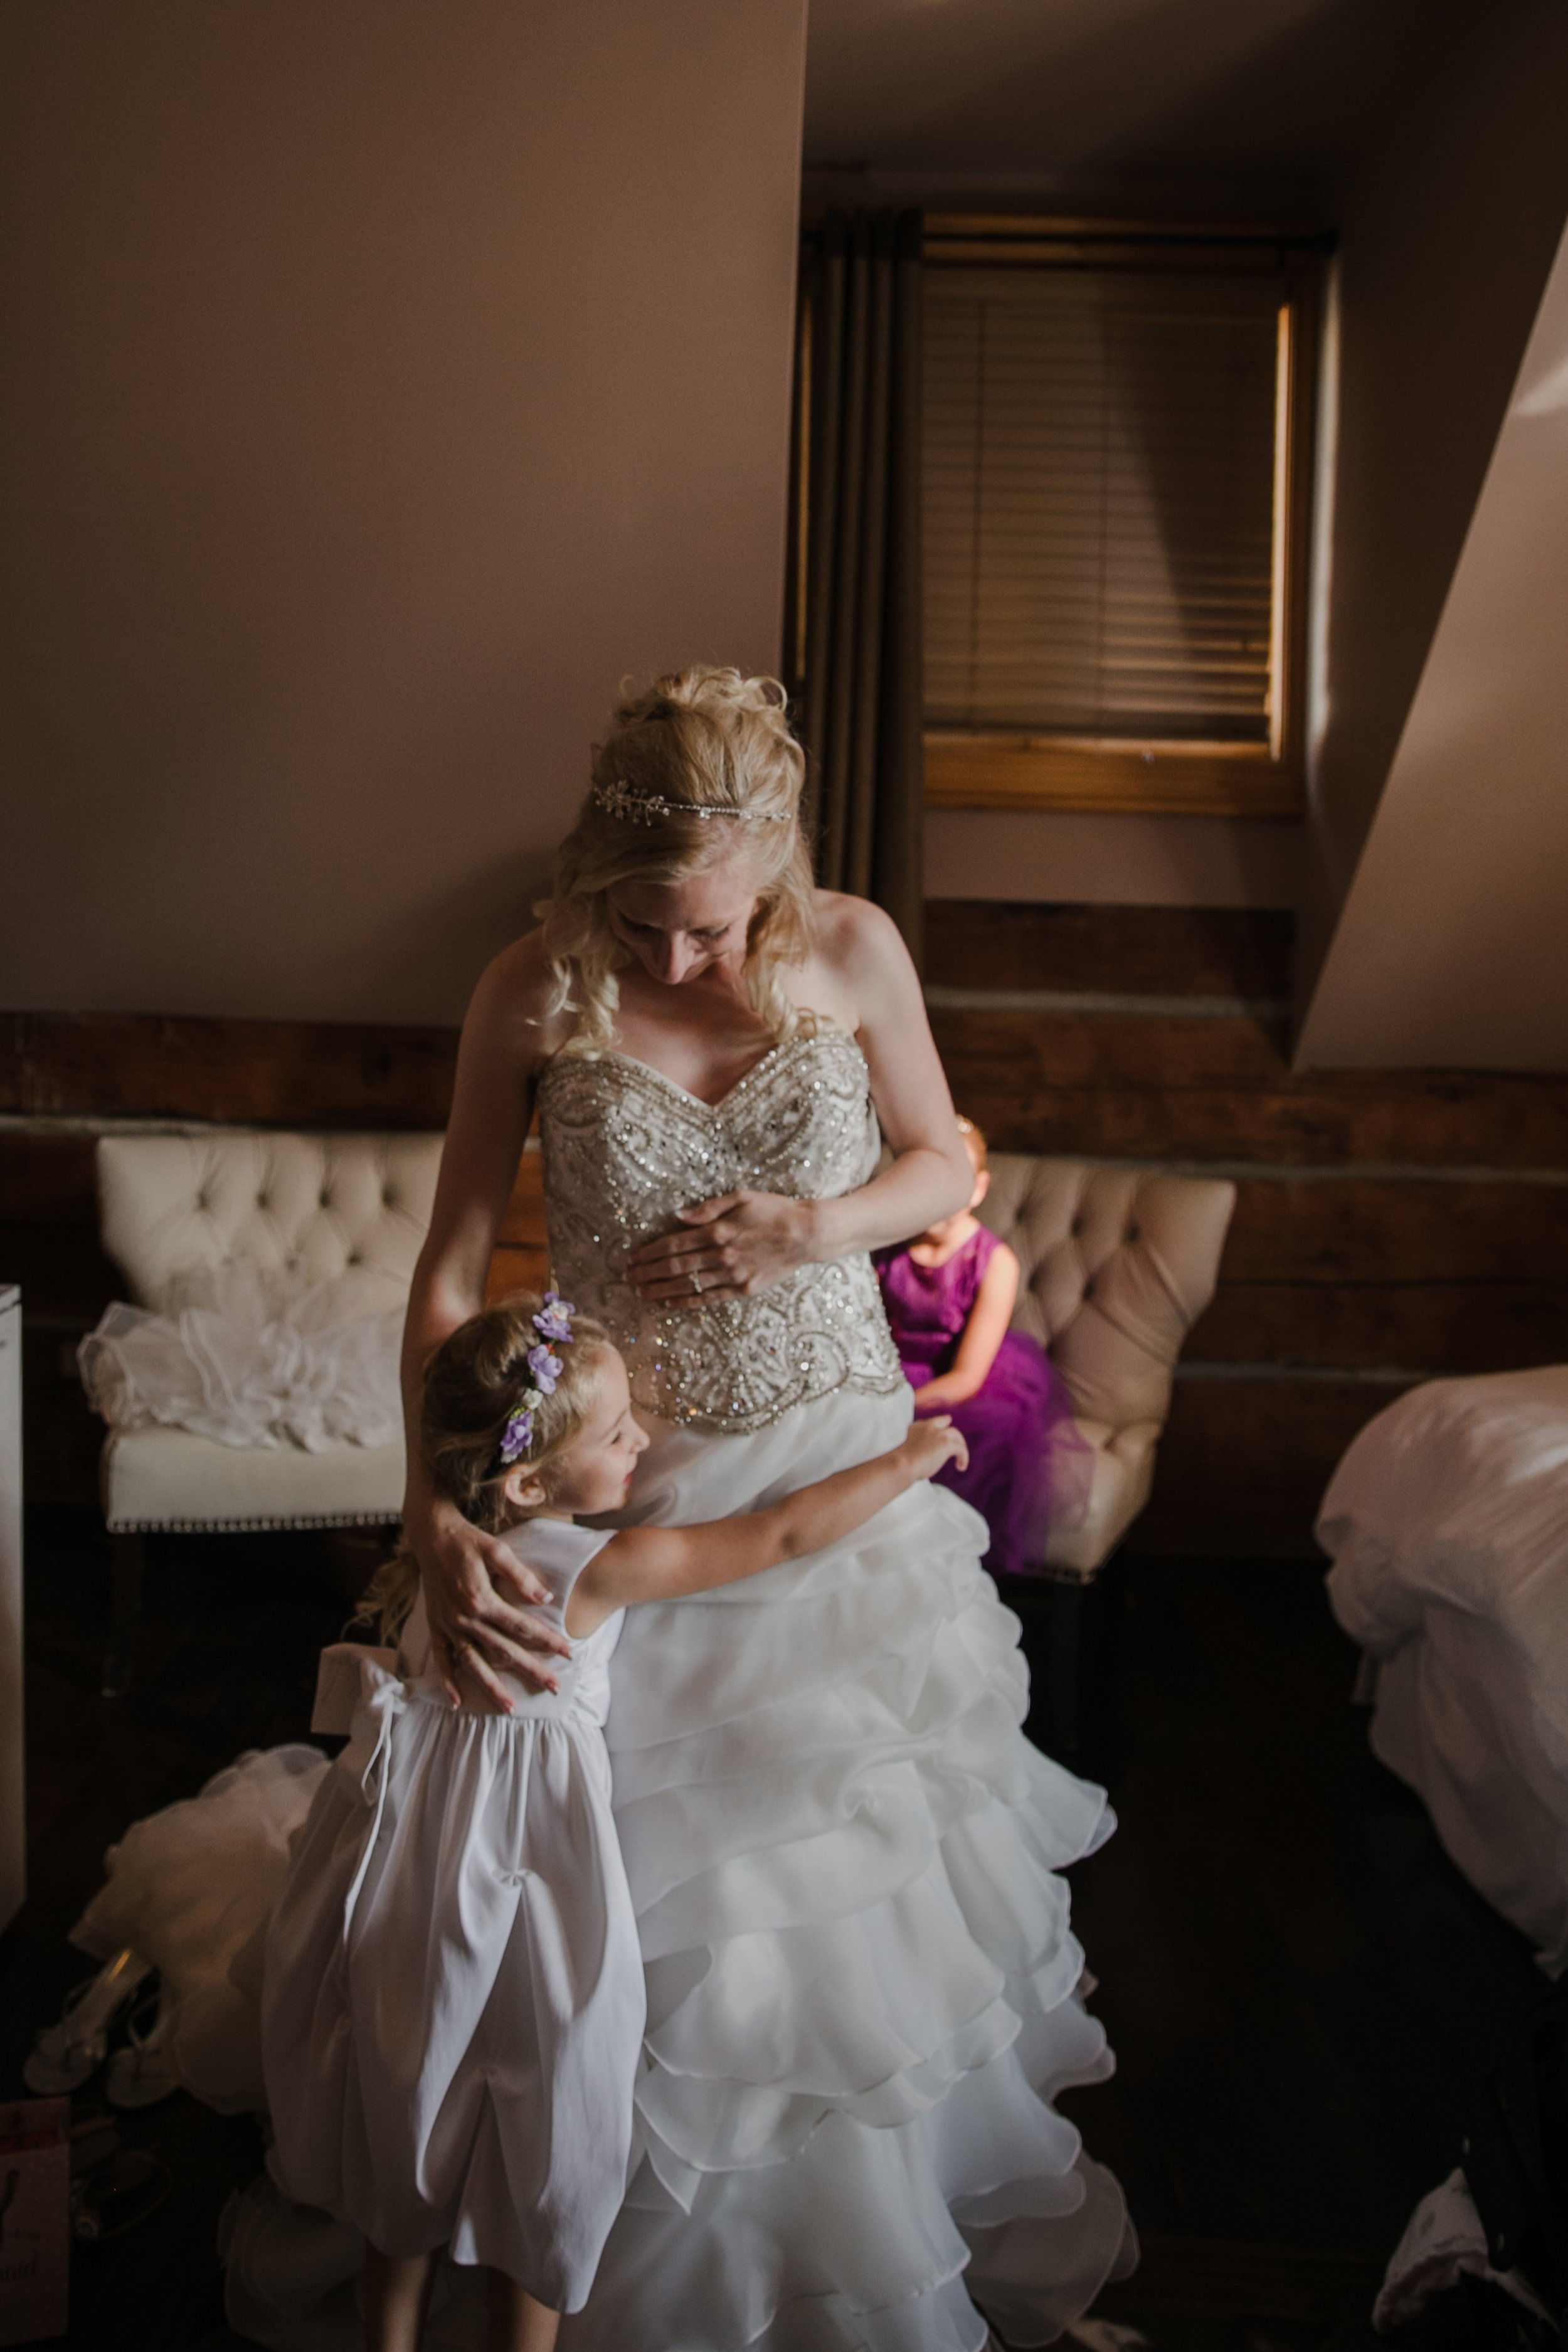 CrystalJessupwedding (35 of 400).jpg